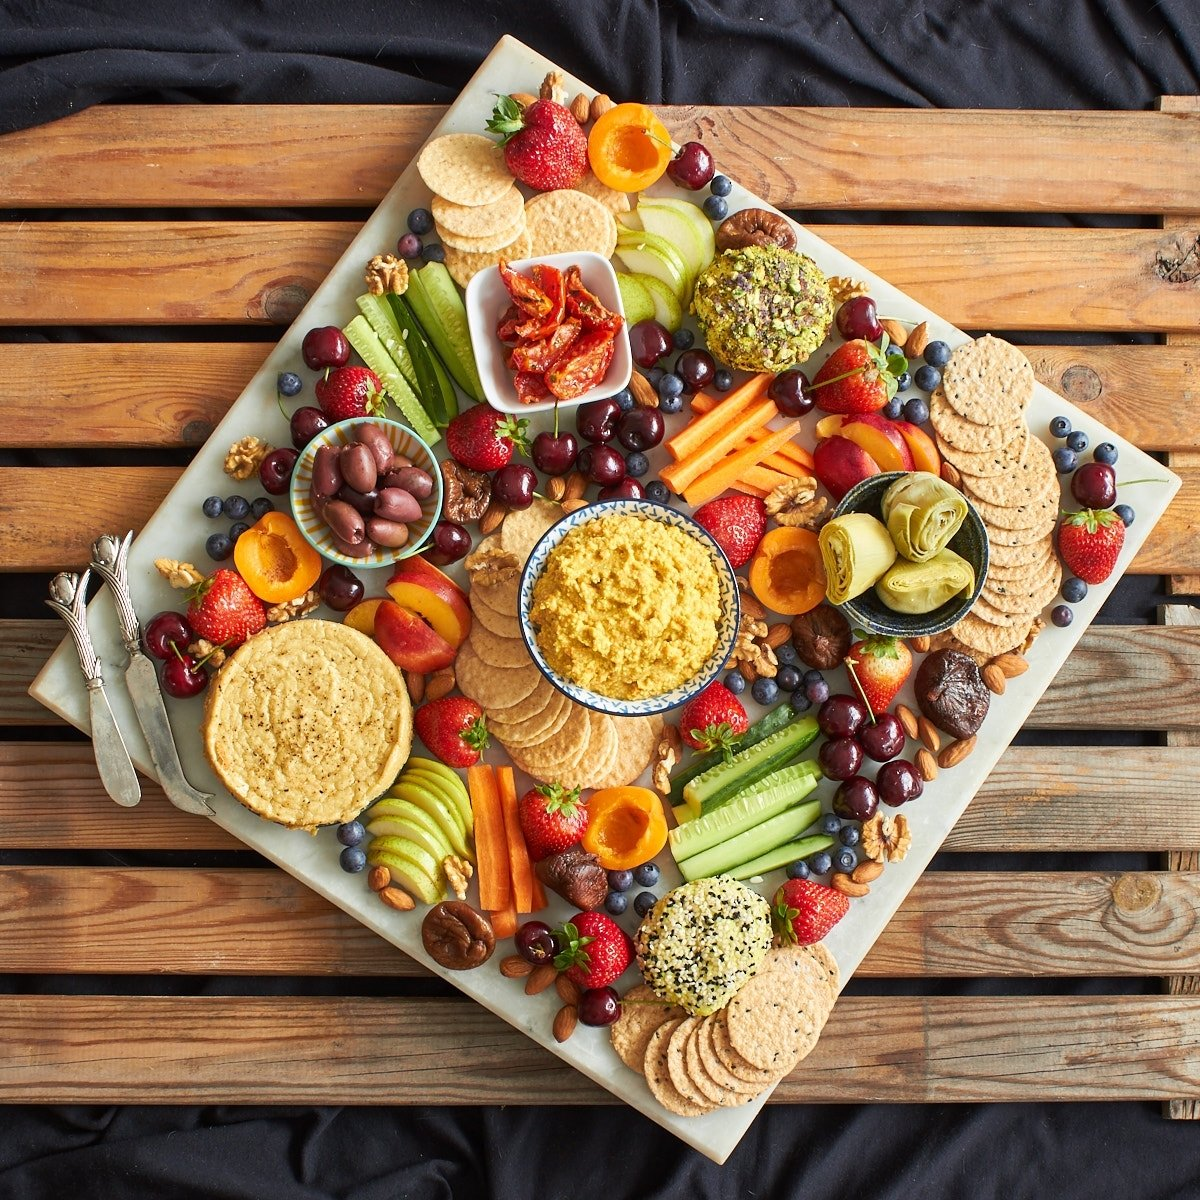 10 Perfect Fruit And Cheese Platter Ideas vegan cheese and fruit platter delightful vegans 2021